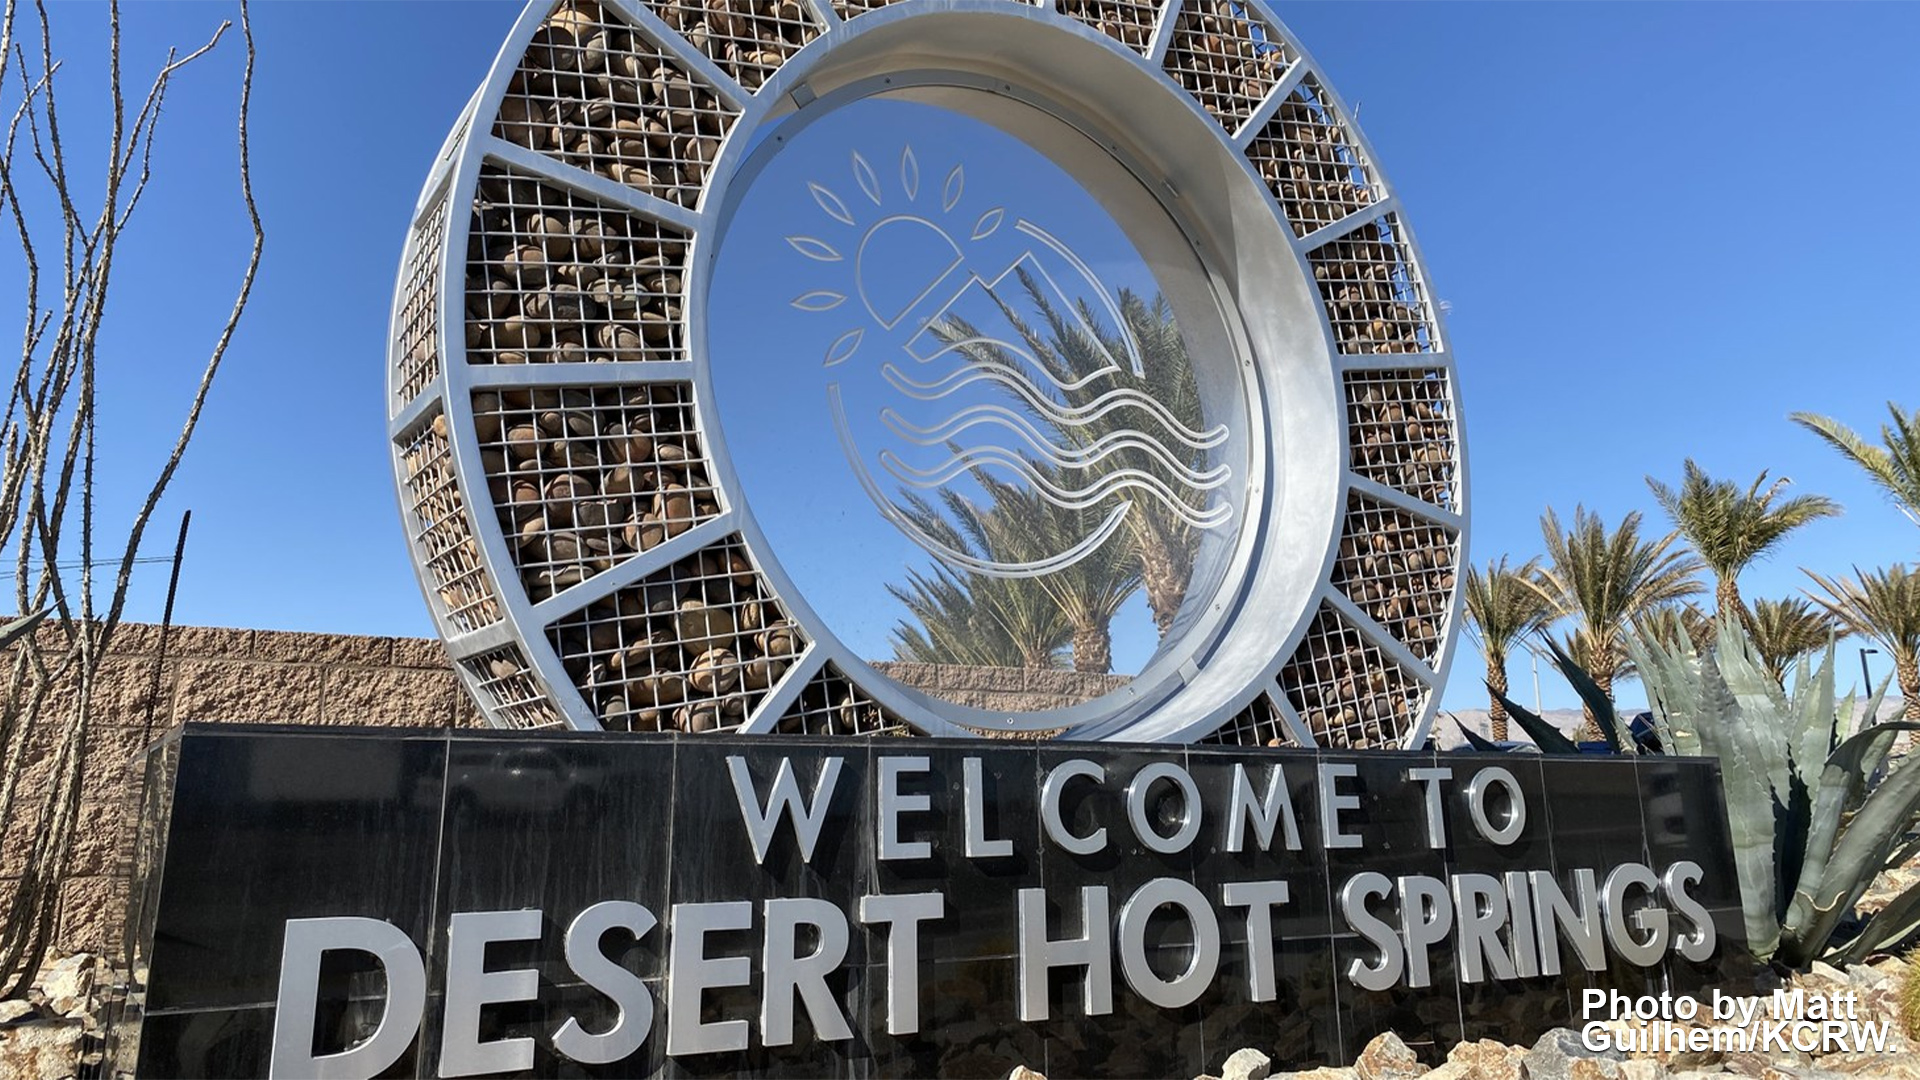 Desert Hot Springs wants to be the Napa Valley of weed